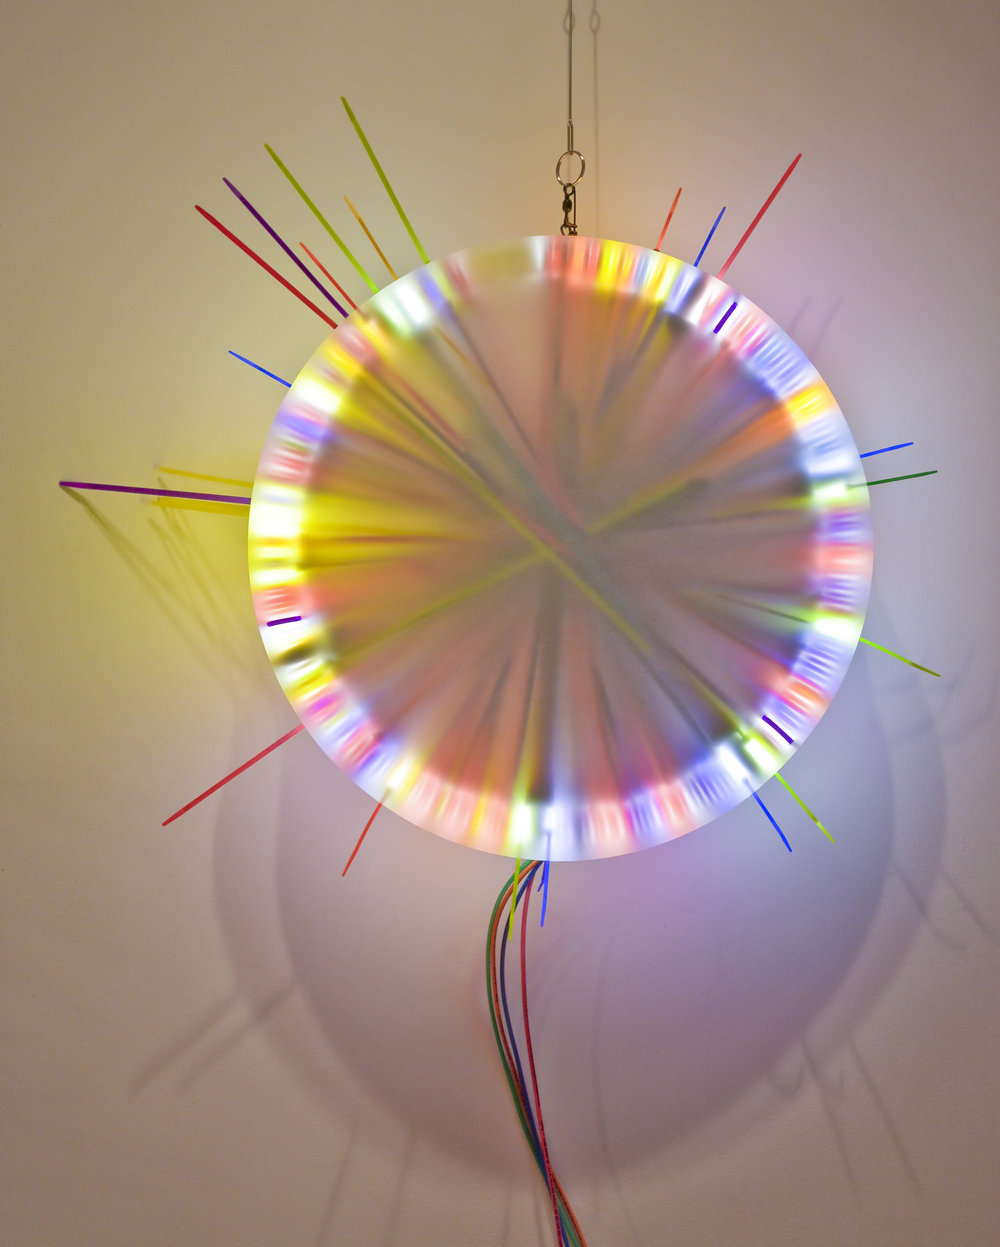 Mixed Pair (Breakup) A   Fluorescent Lamp, color snap ties, loom heddles and fishing spinners and color wire 16 in lamp diameter 24 in overall